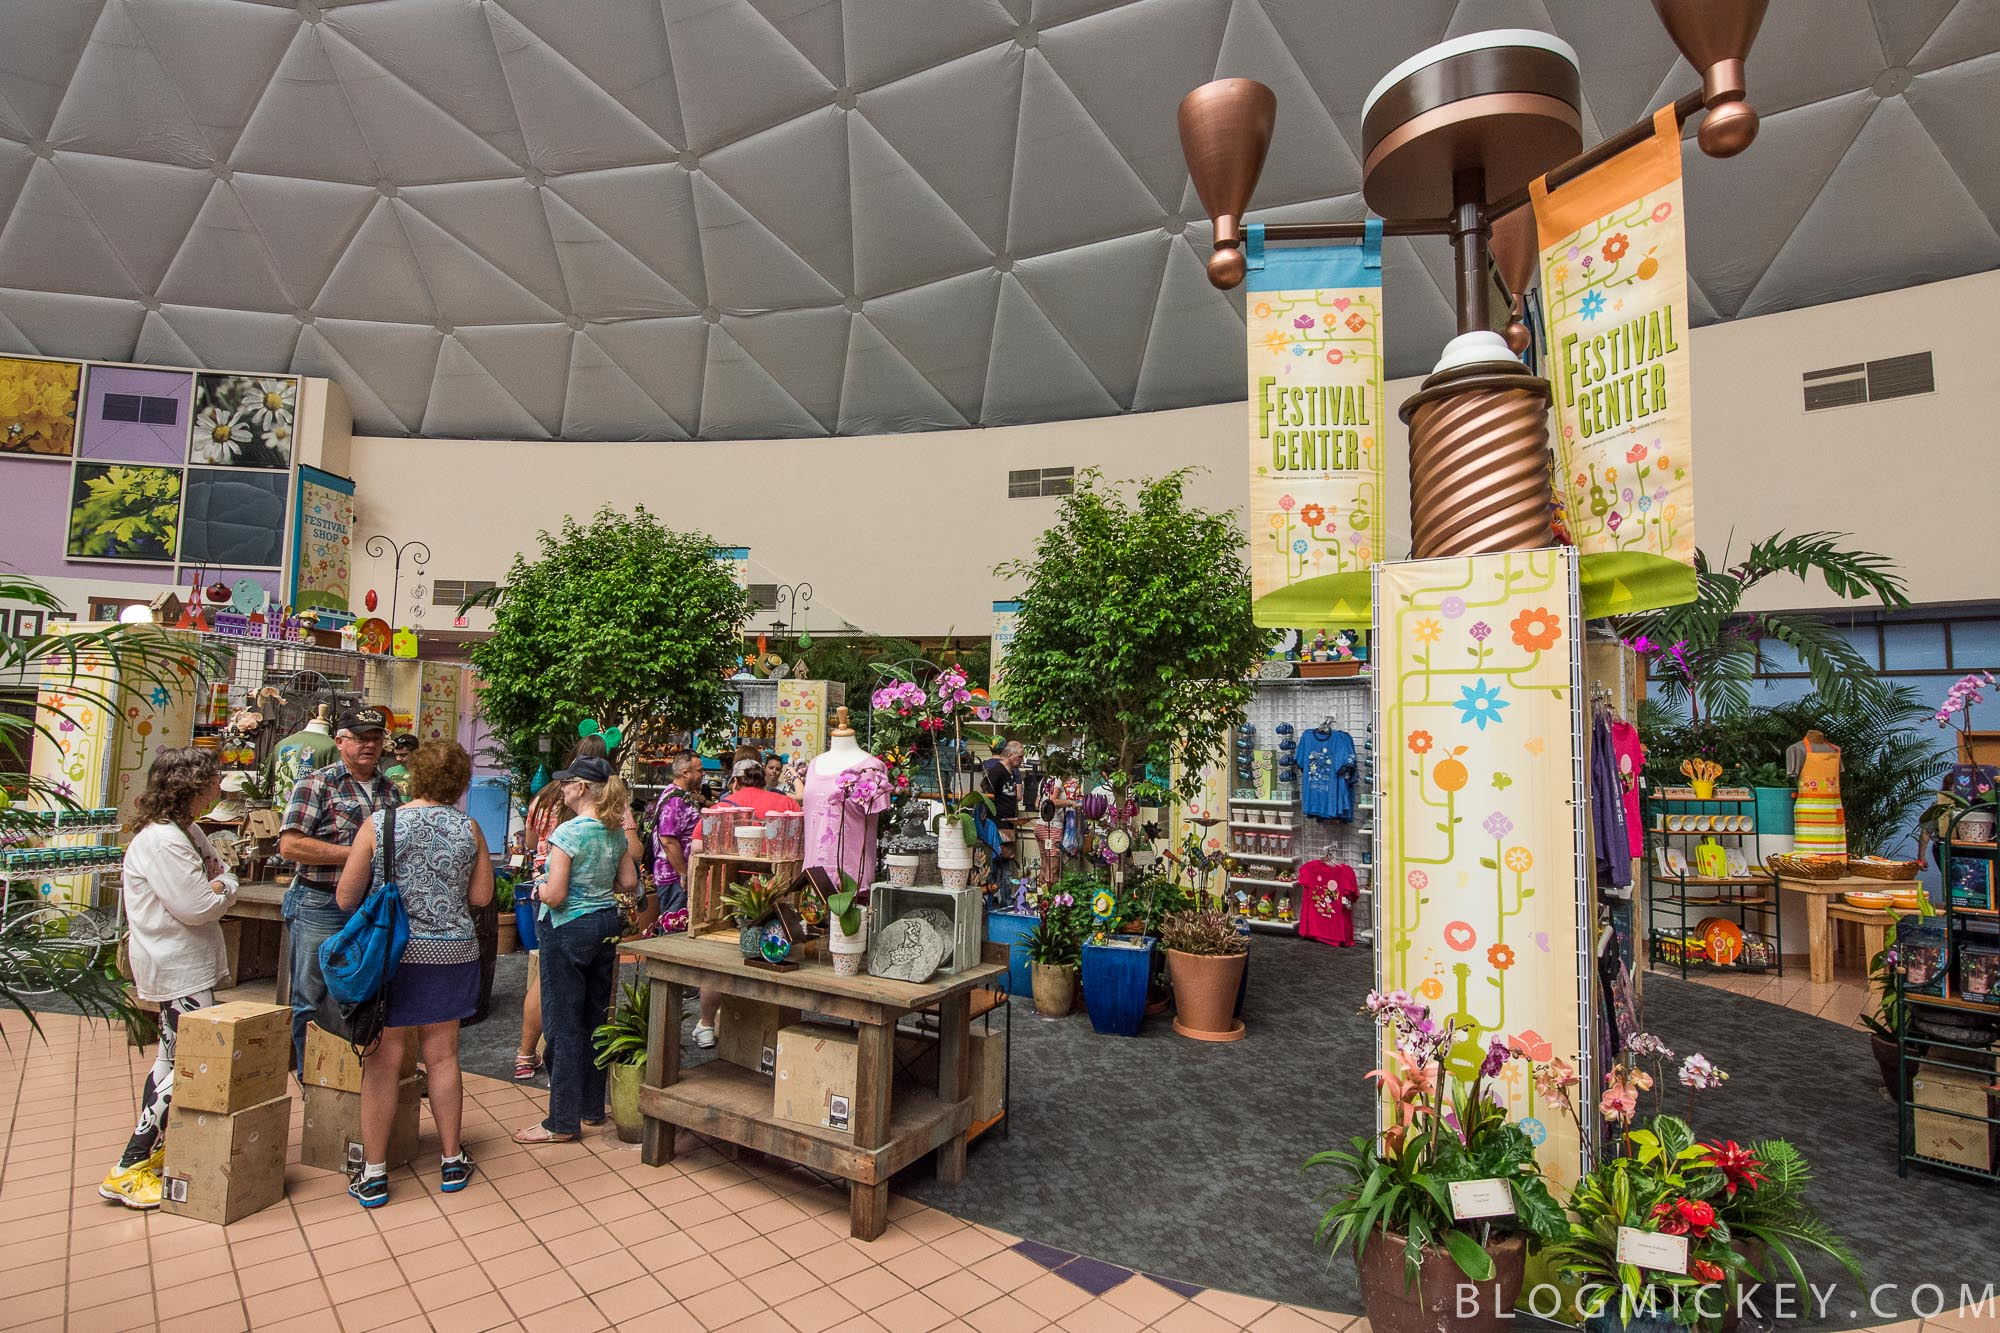 Photos Take A Look Around The 2017 Epcot Flower And Garden Festival Center The Wonders Of